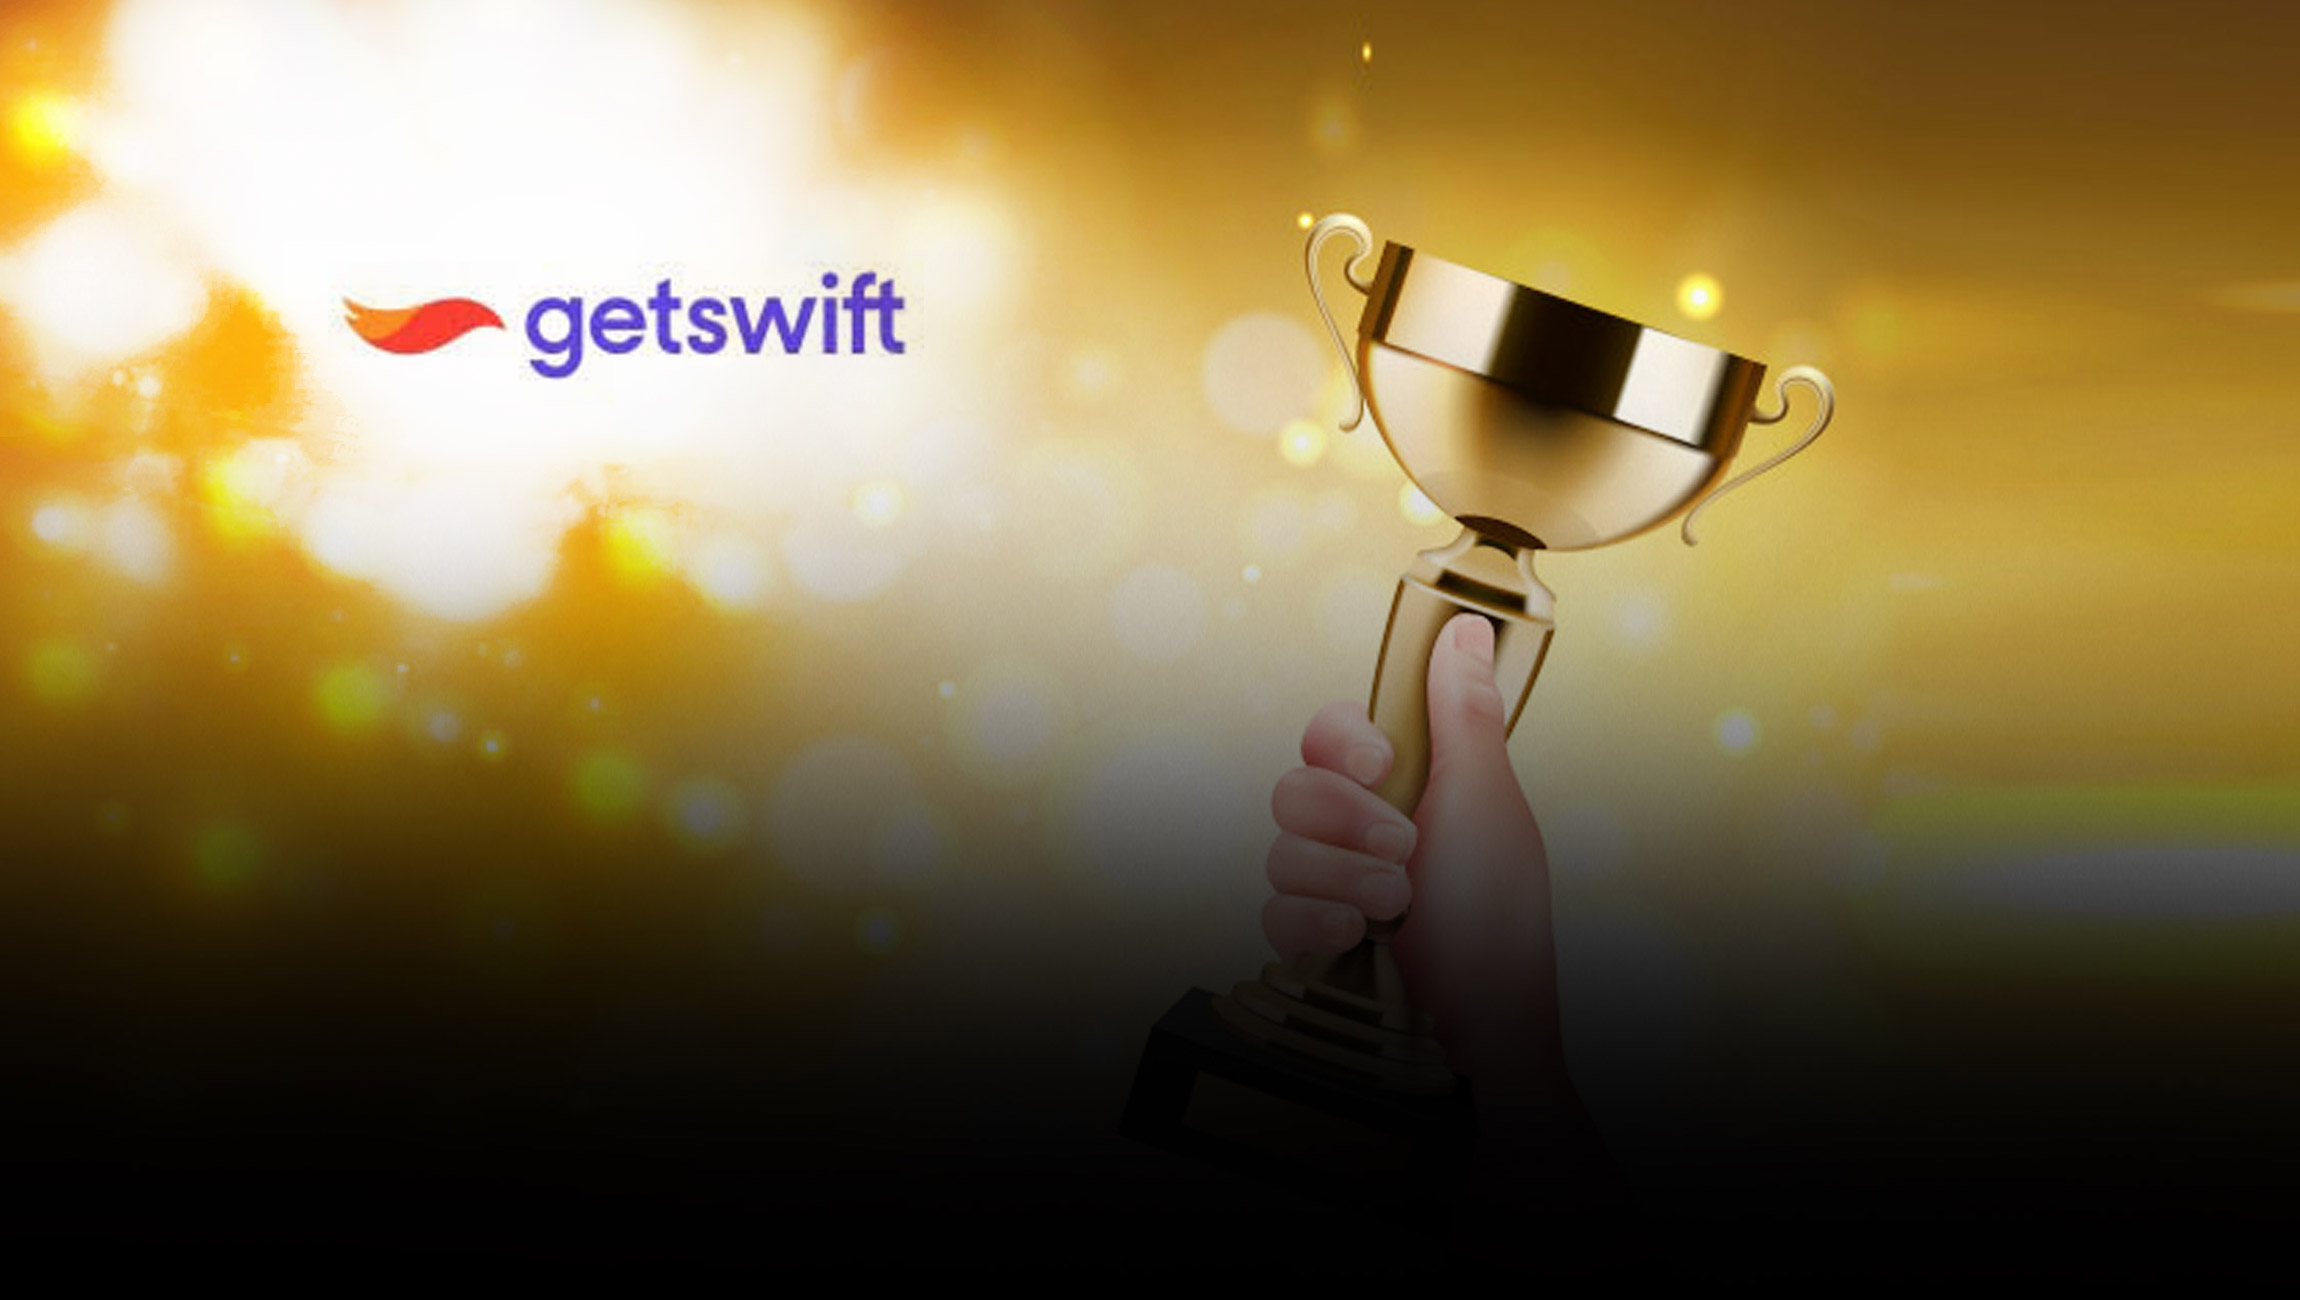 GetSwift-Consortium-Awarded-24.36-Million-Euro-Contract-from-Ministry-of-Trade_-Tourism-and-Telecommunications_-Republic-of-Serbia